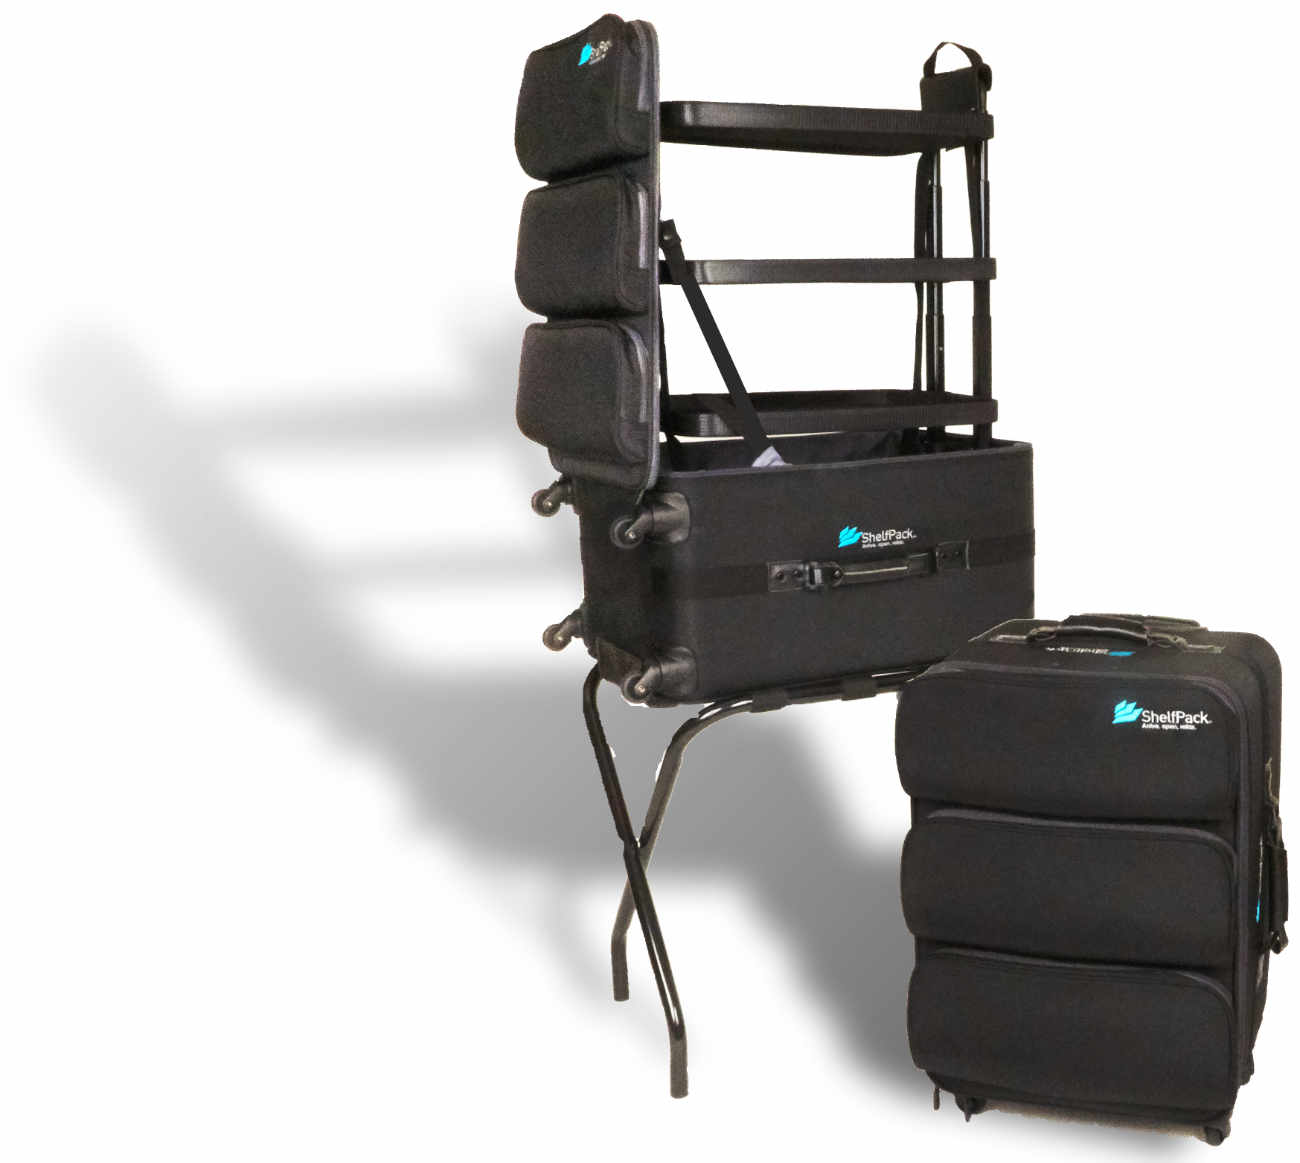 Shelfpack Introducing The Revolutionary Suitcase With